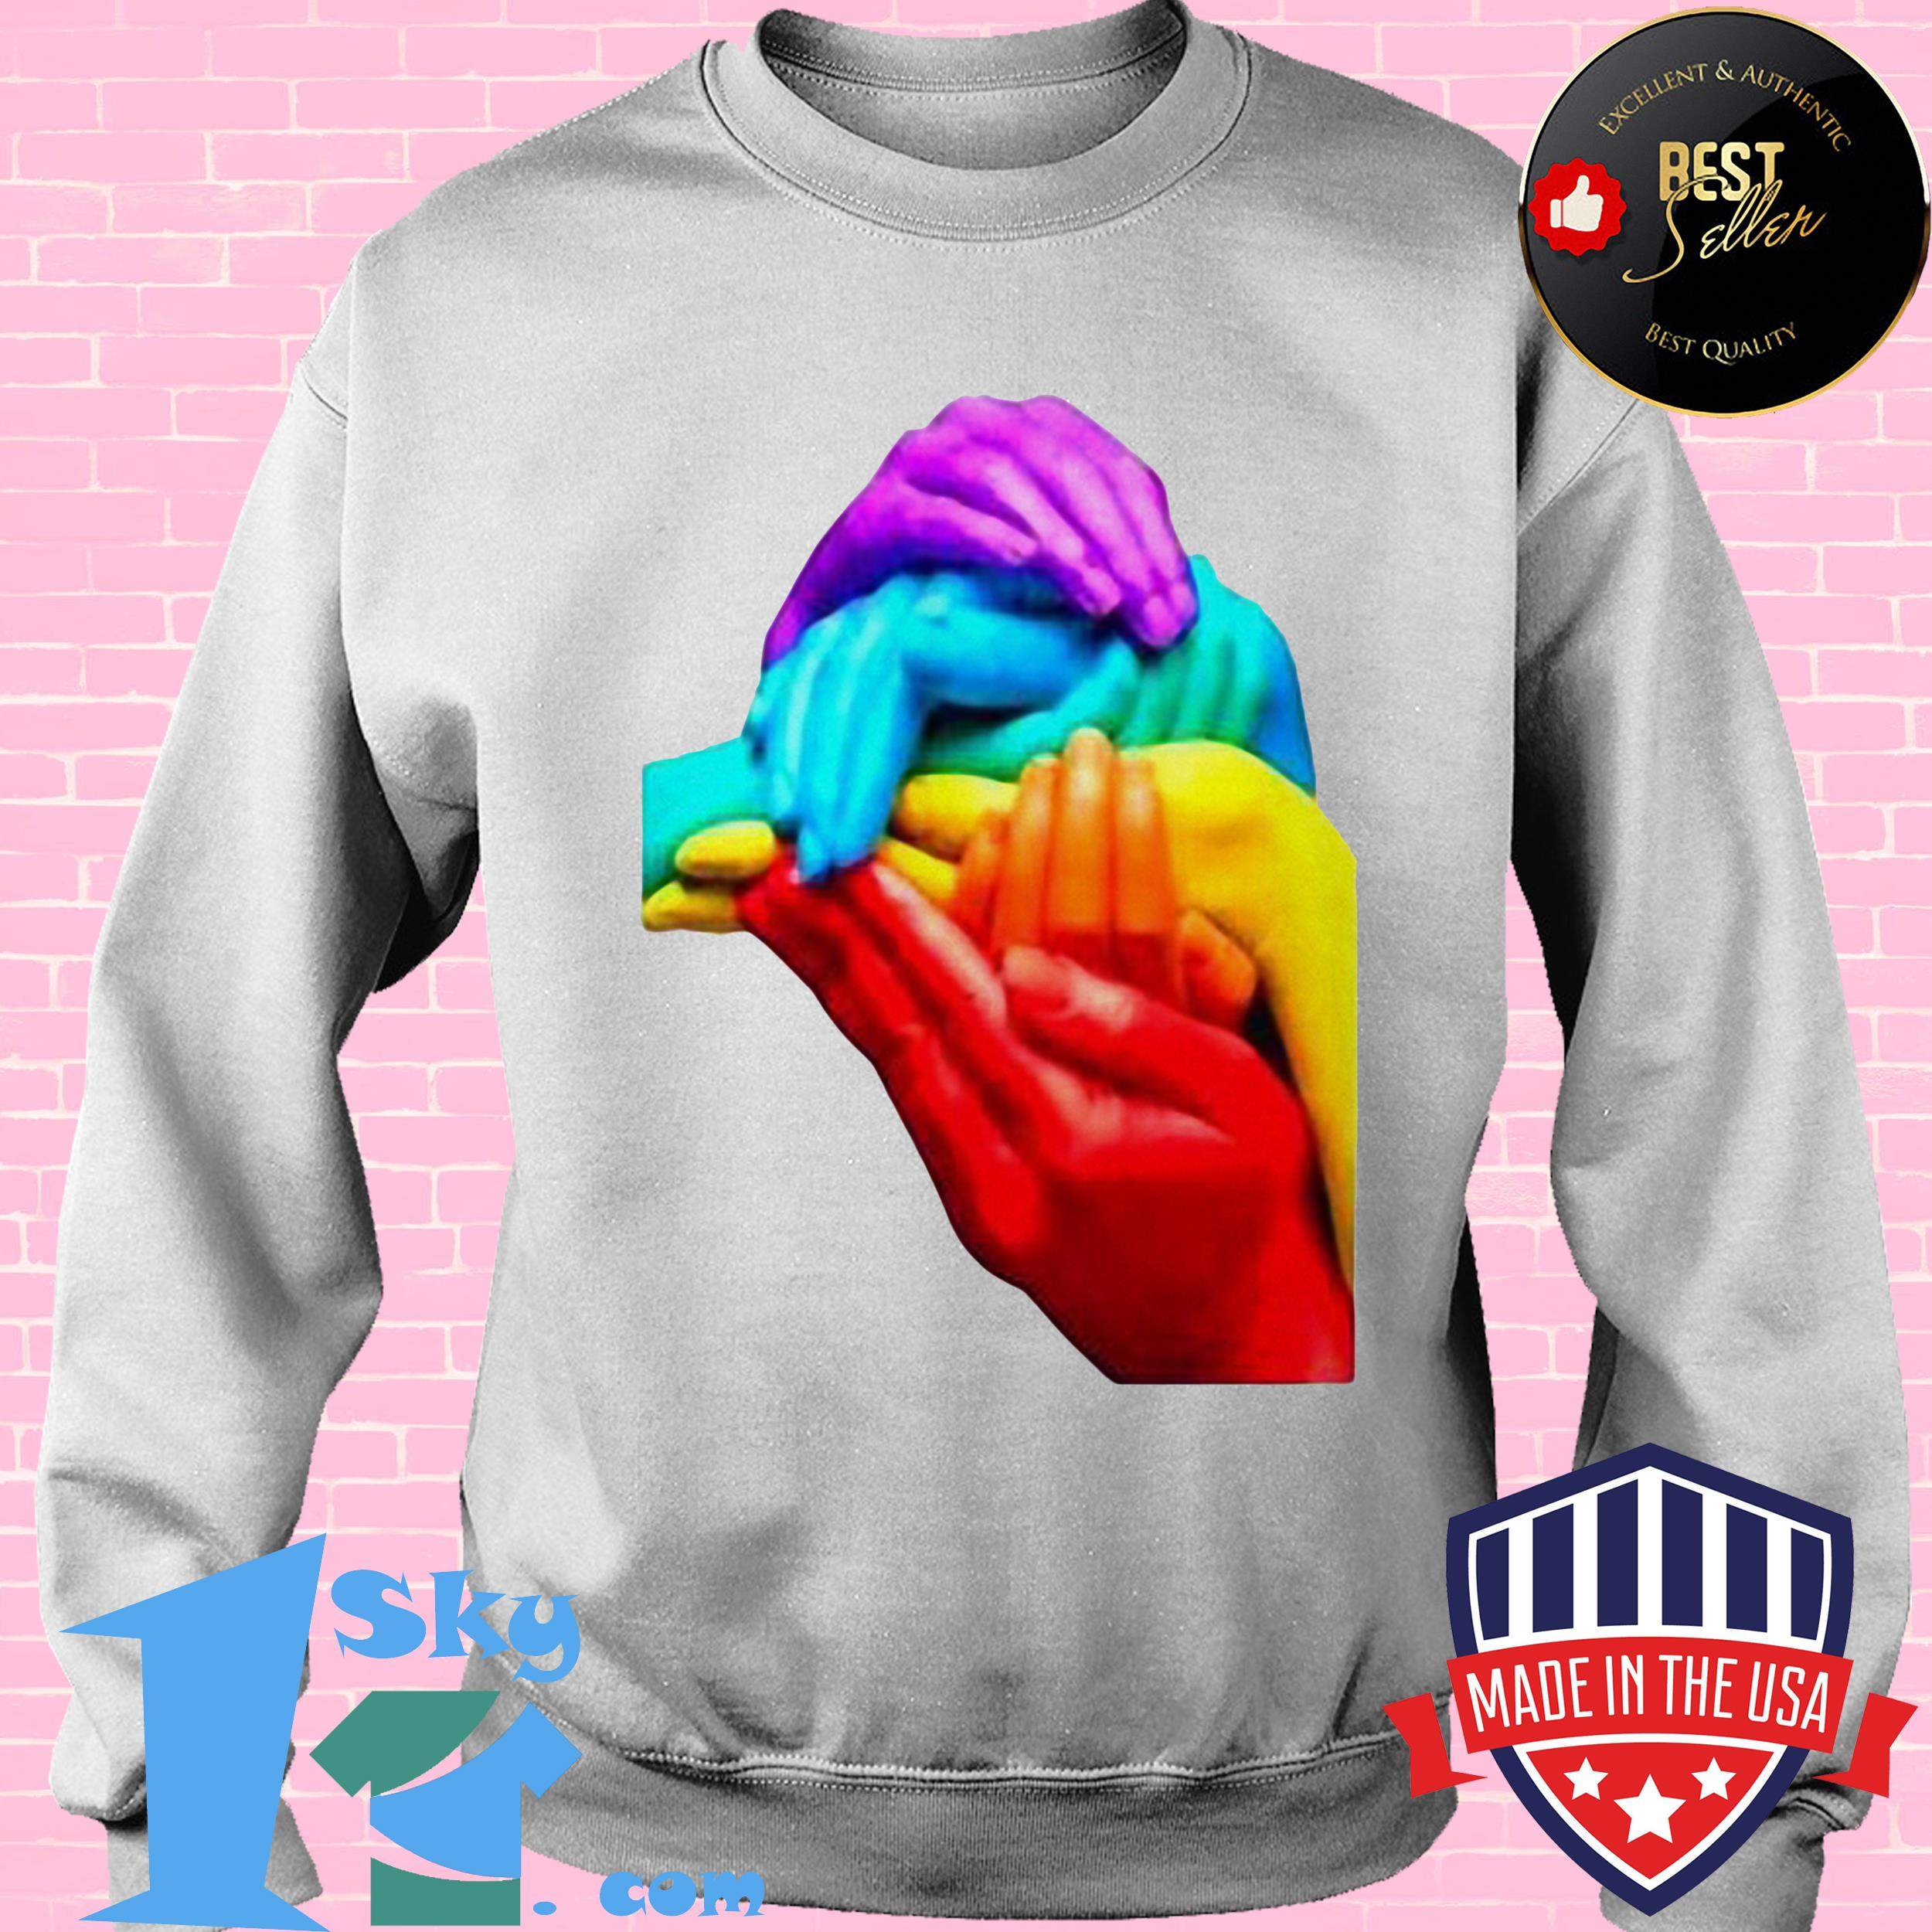 hands colourful gay pride lgbt london soho cool rainbow retro sweatshirt - Hands Colourful Gay Pride LGBT London Soho Cool Rainbow Retro Shirt